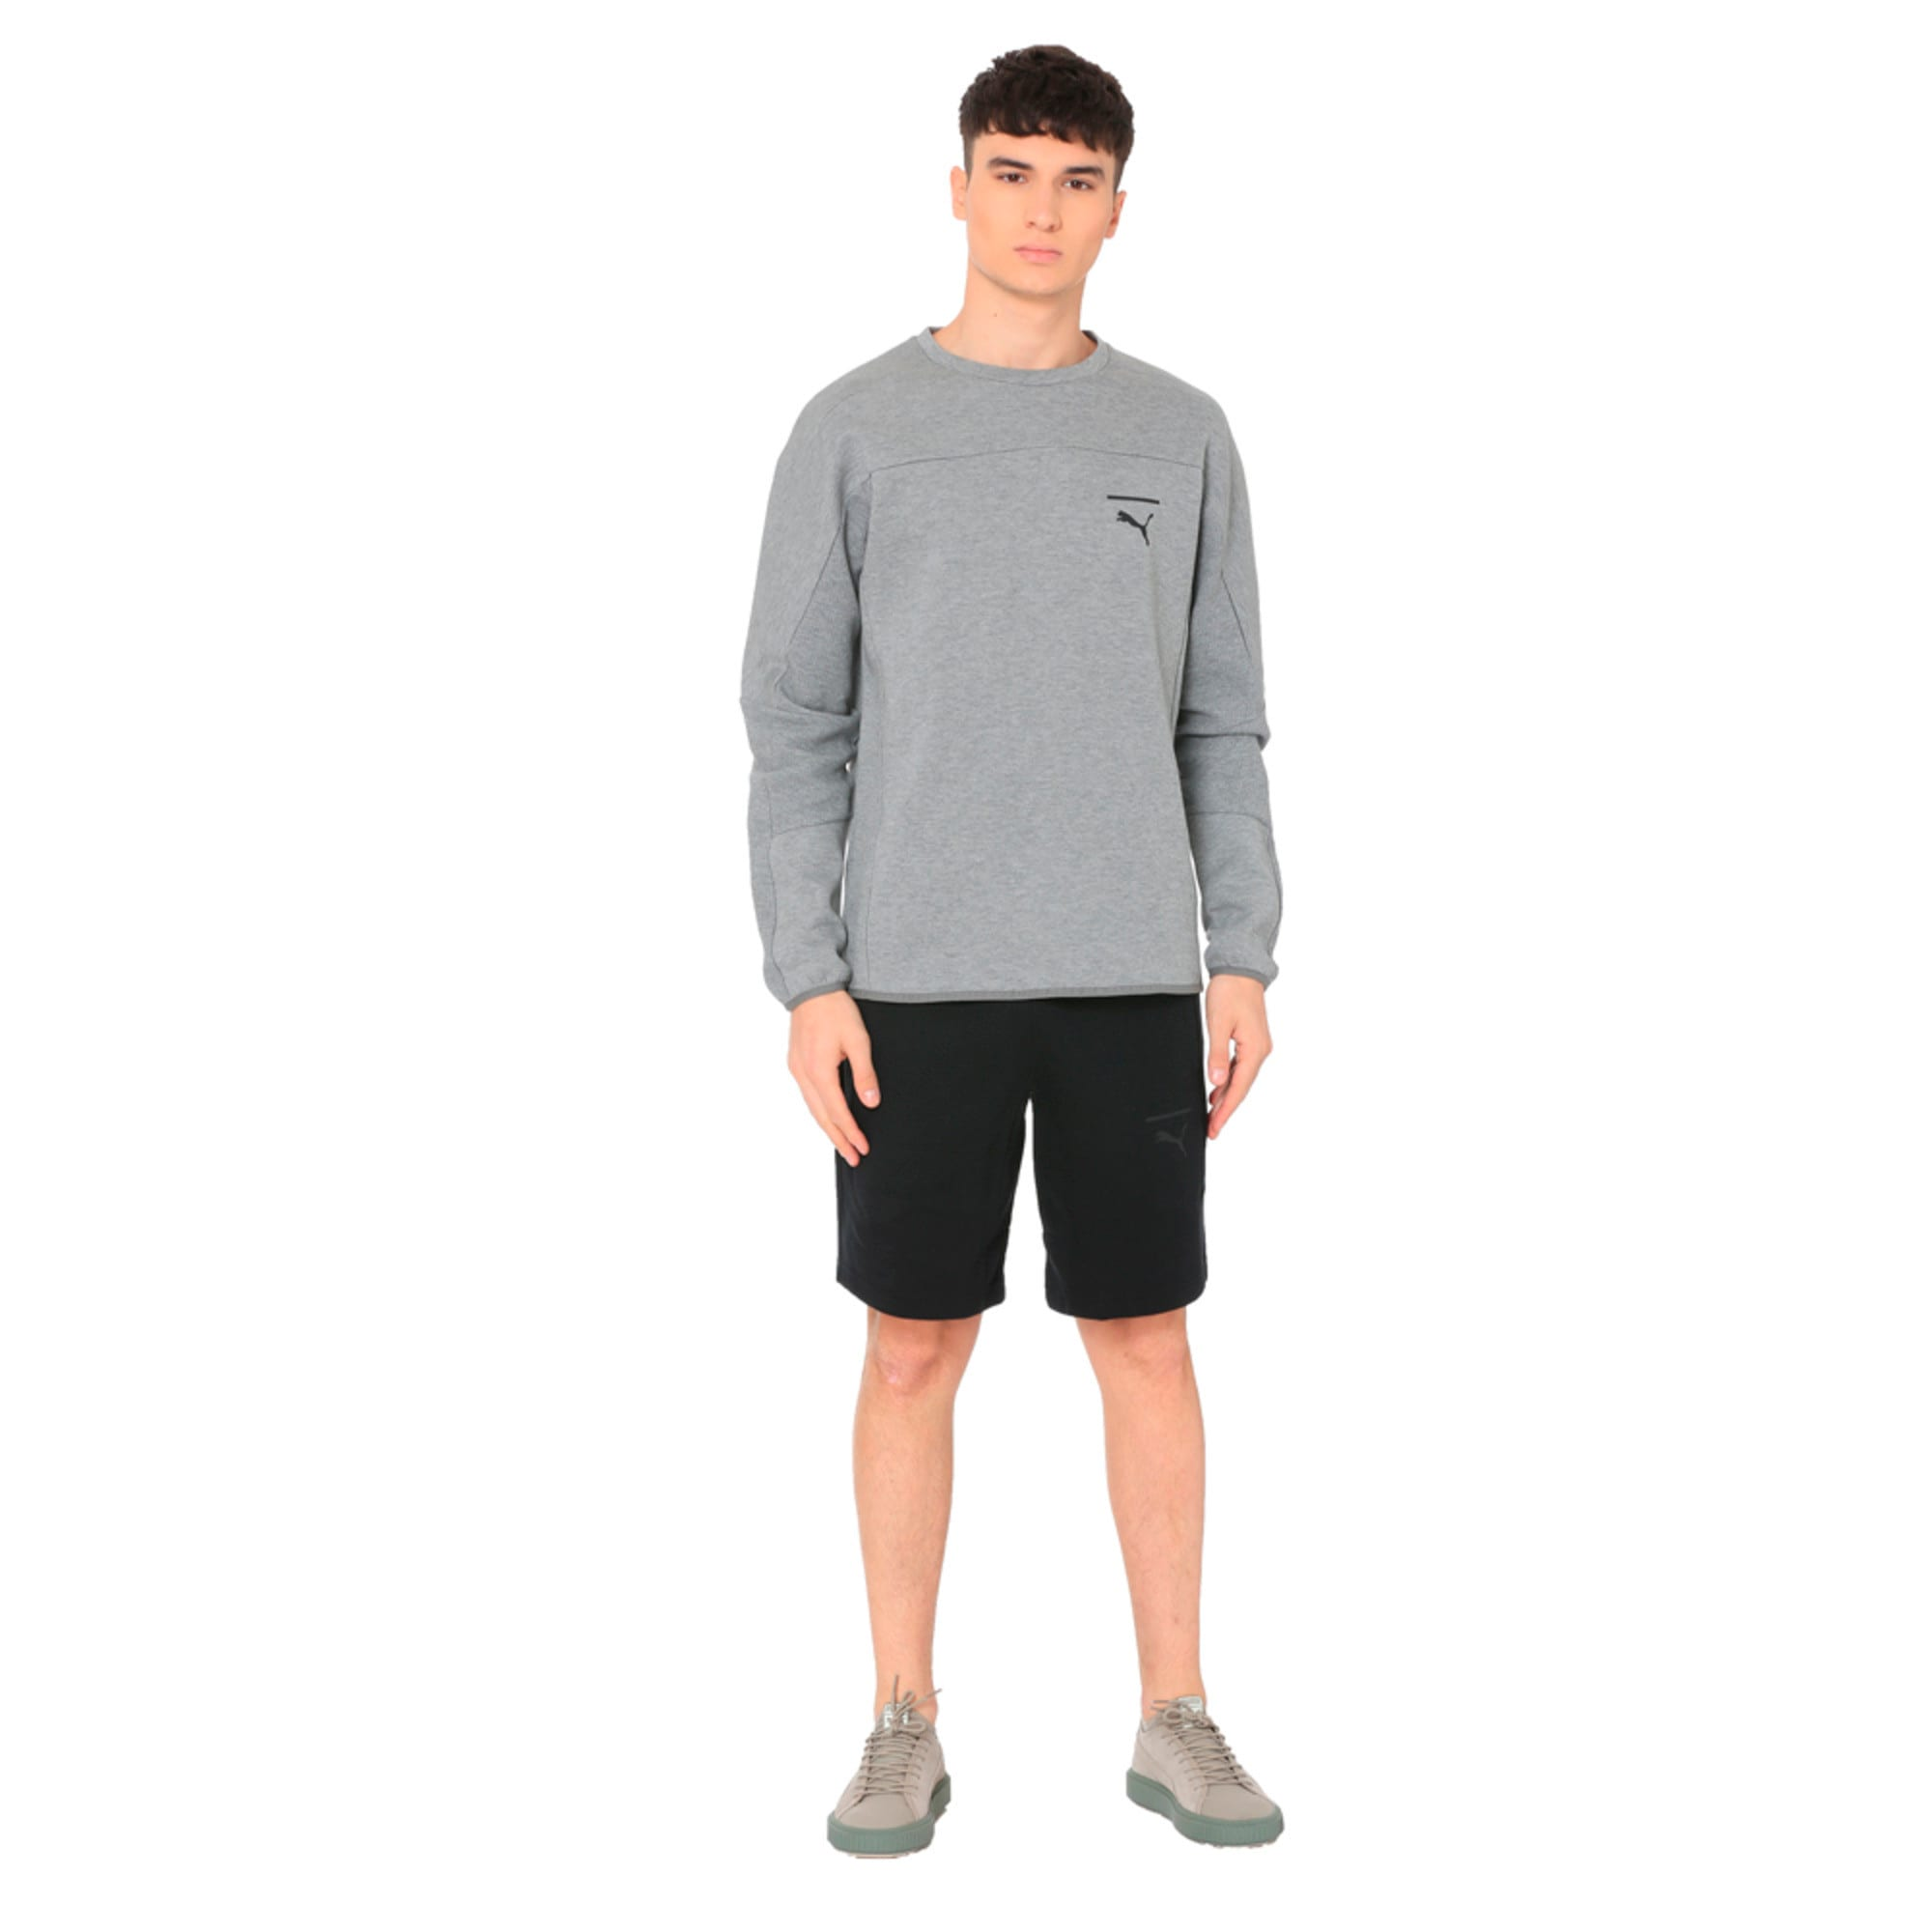 Thumbnail 2 of Pace Crew Neck Men's Sweatshirt, Medium Gray Heather, medium-IND